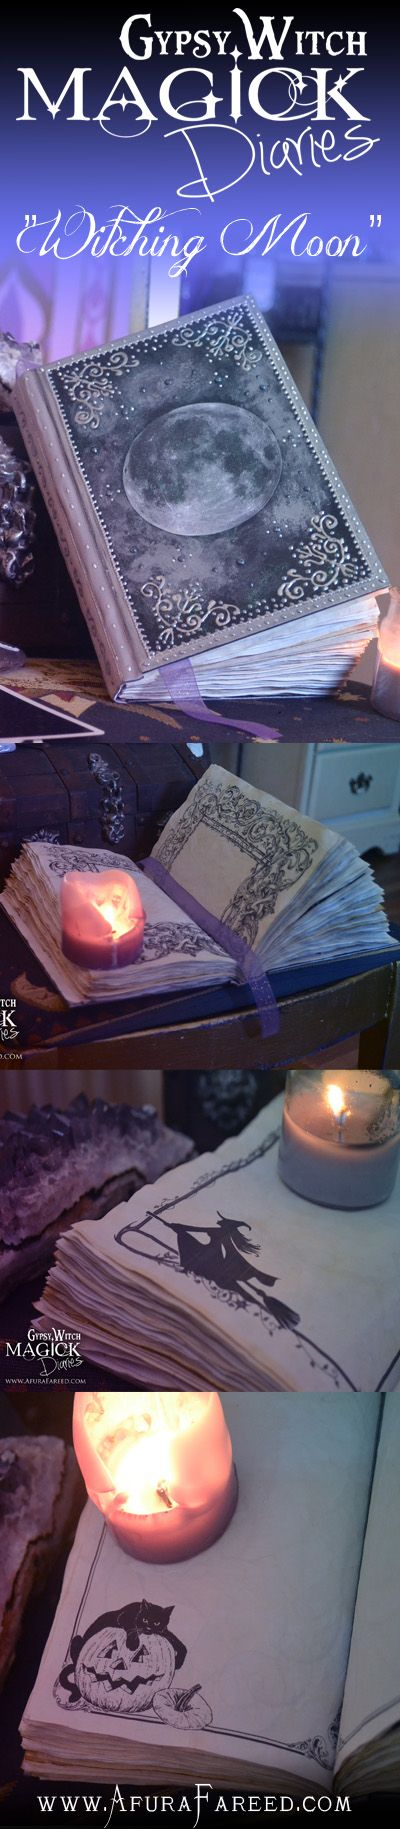 "Magickal Ritual Sacred Tools:  Gypsy Witch #Magick #Diaries ~ ""Witching Moon."""